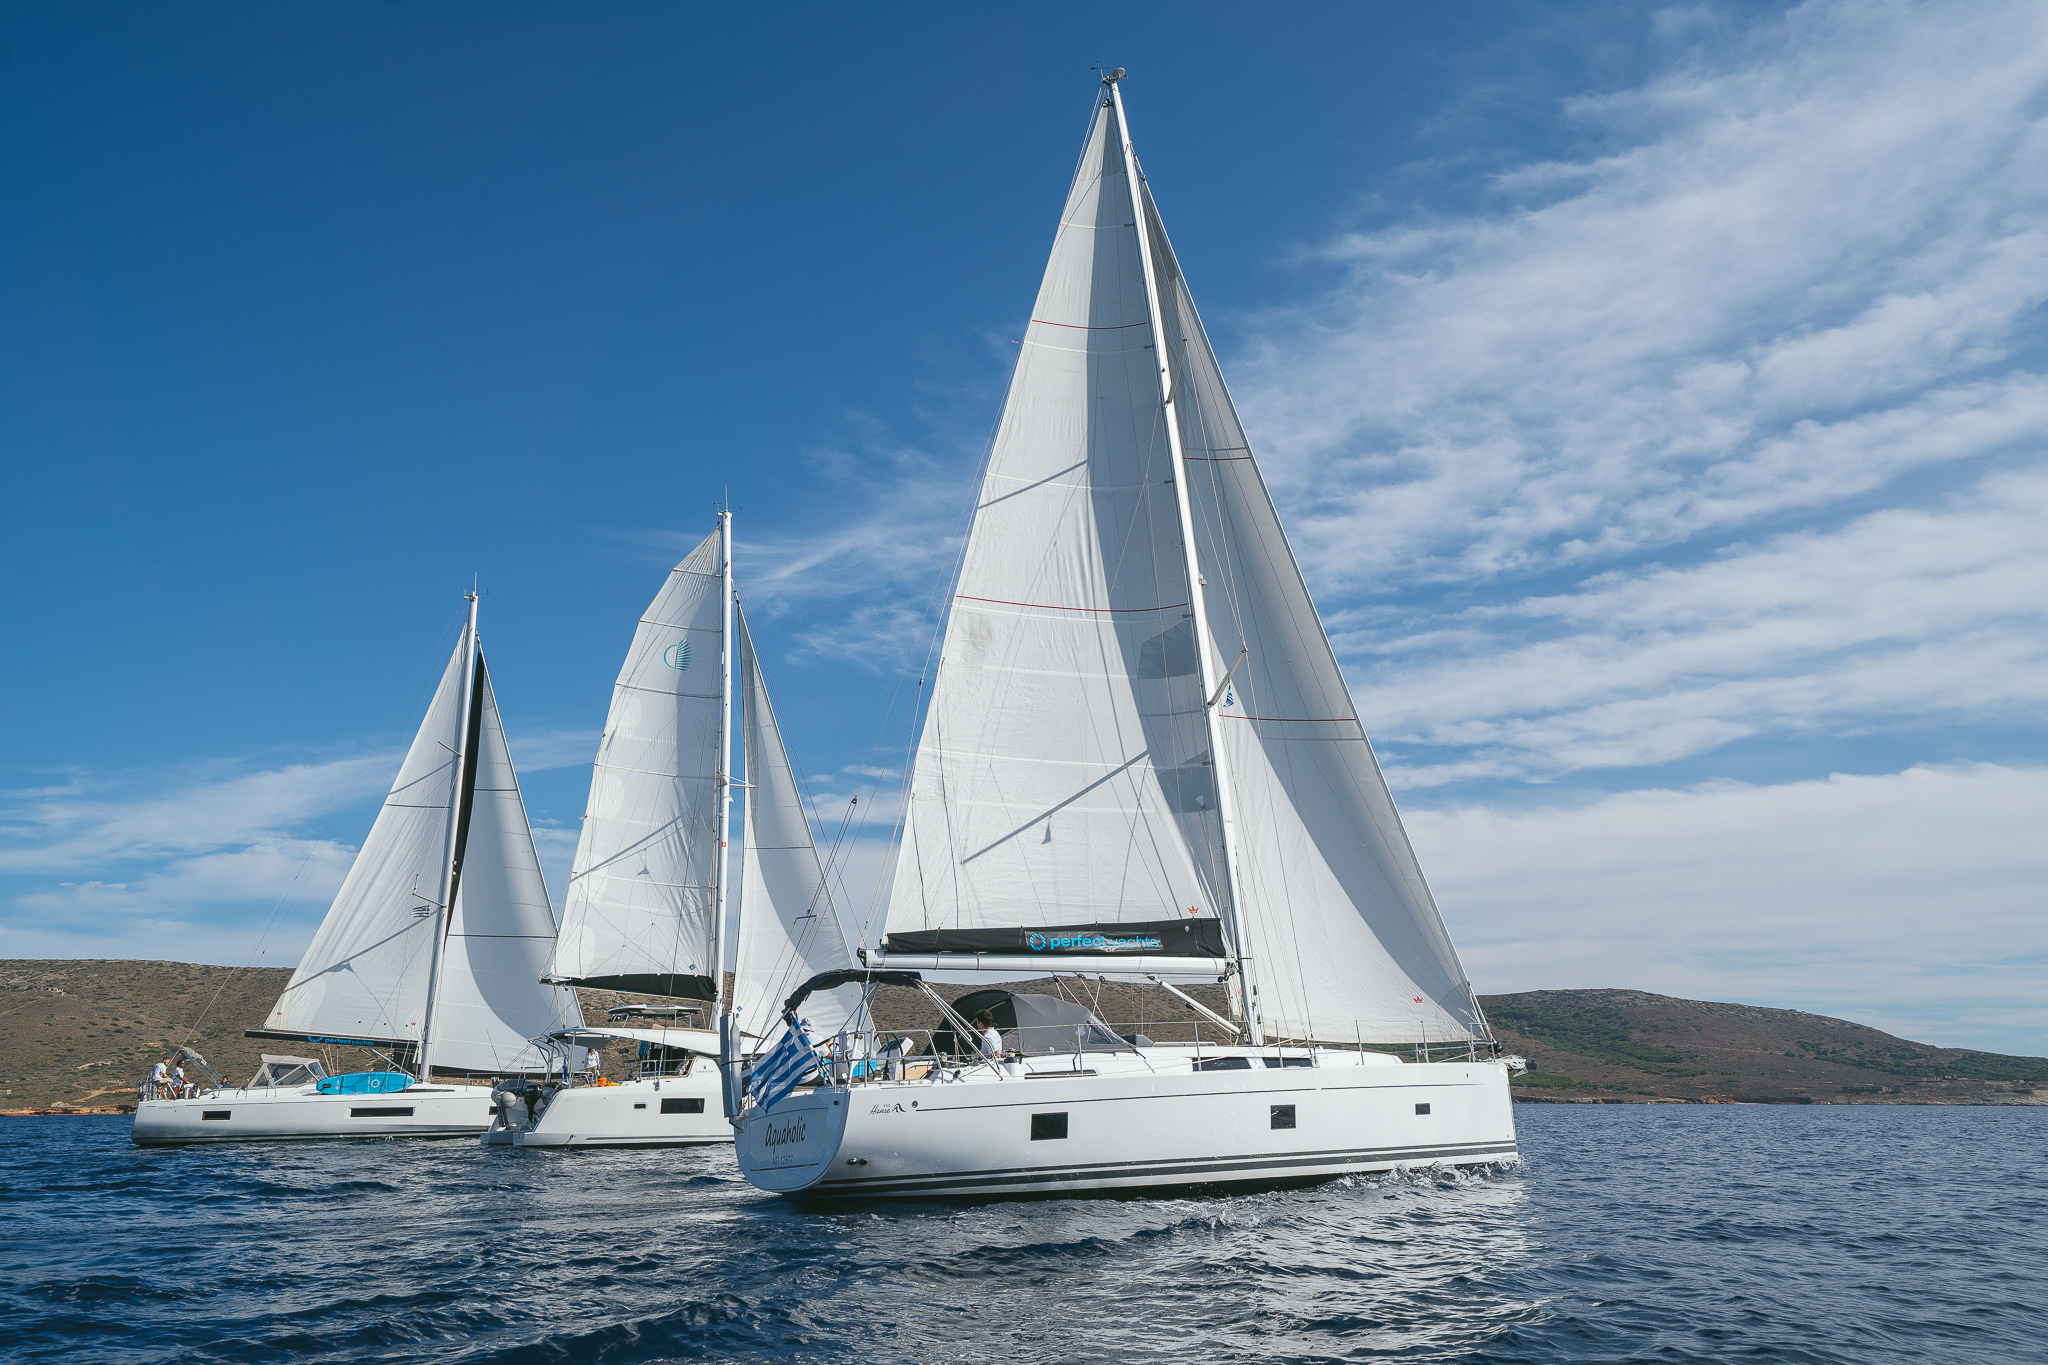 Perfect Yachts, Luxury Lifestyle Awards, Greece, Helen Siwak, FolioYVR, Vancouver, BC, vacation